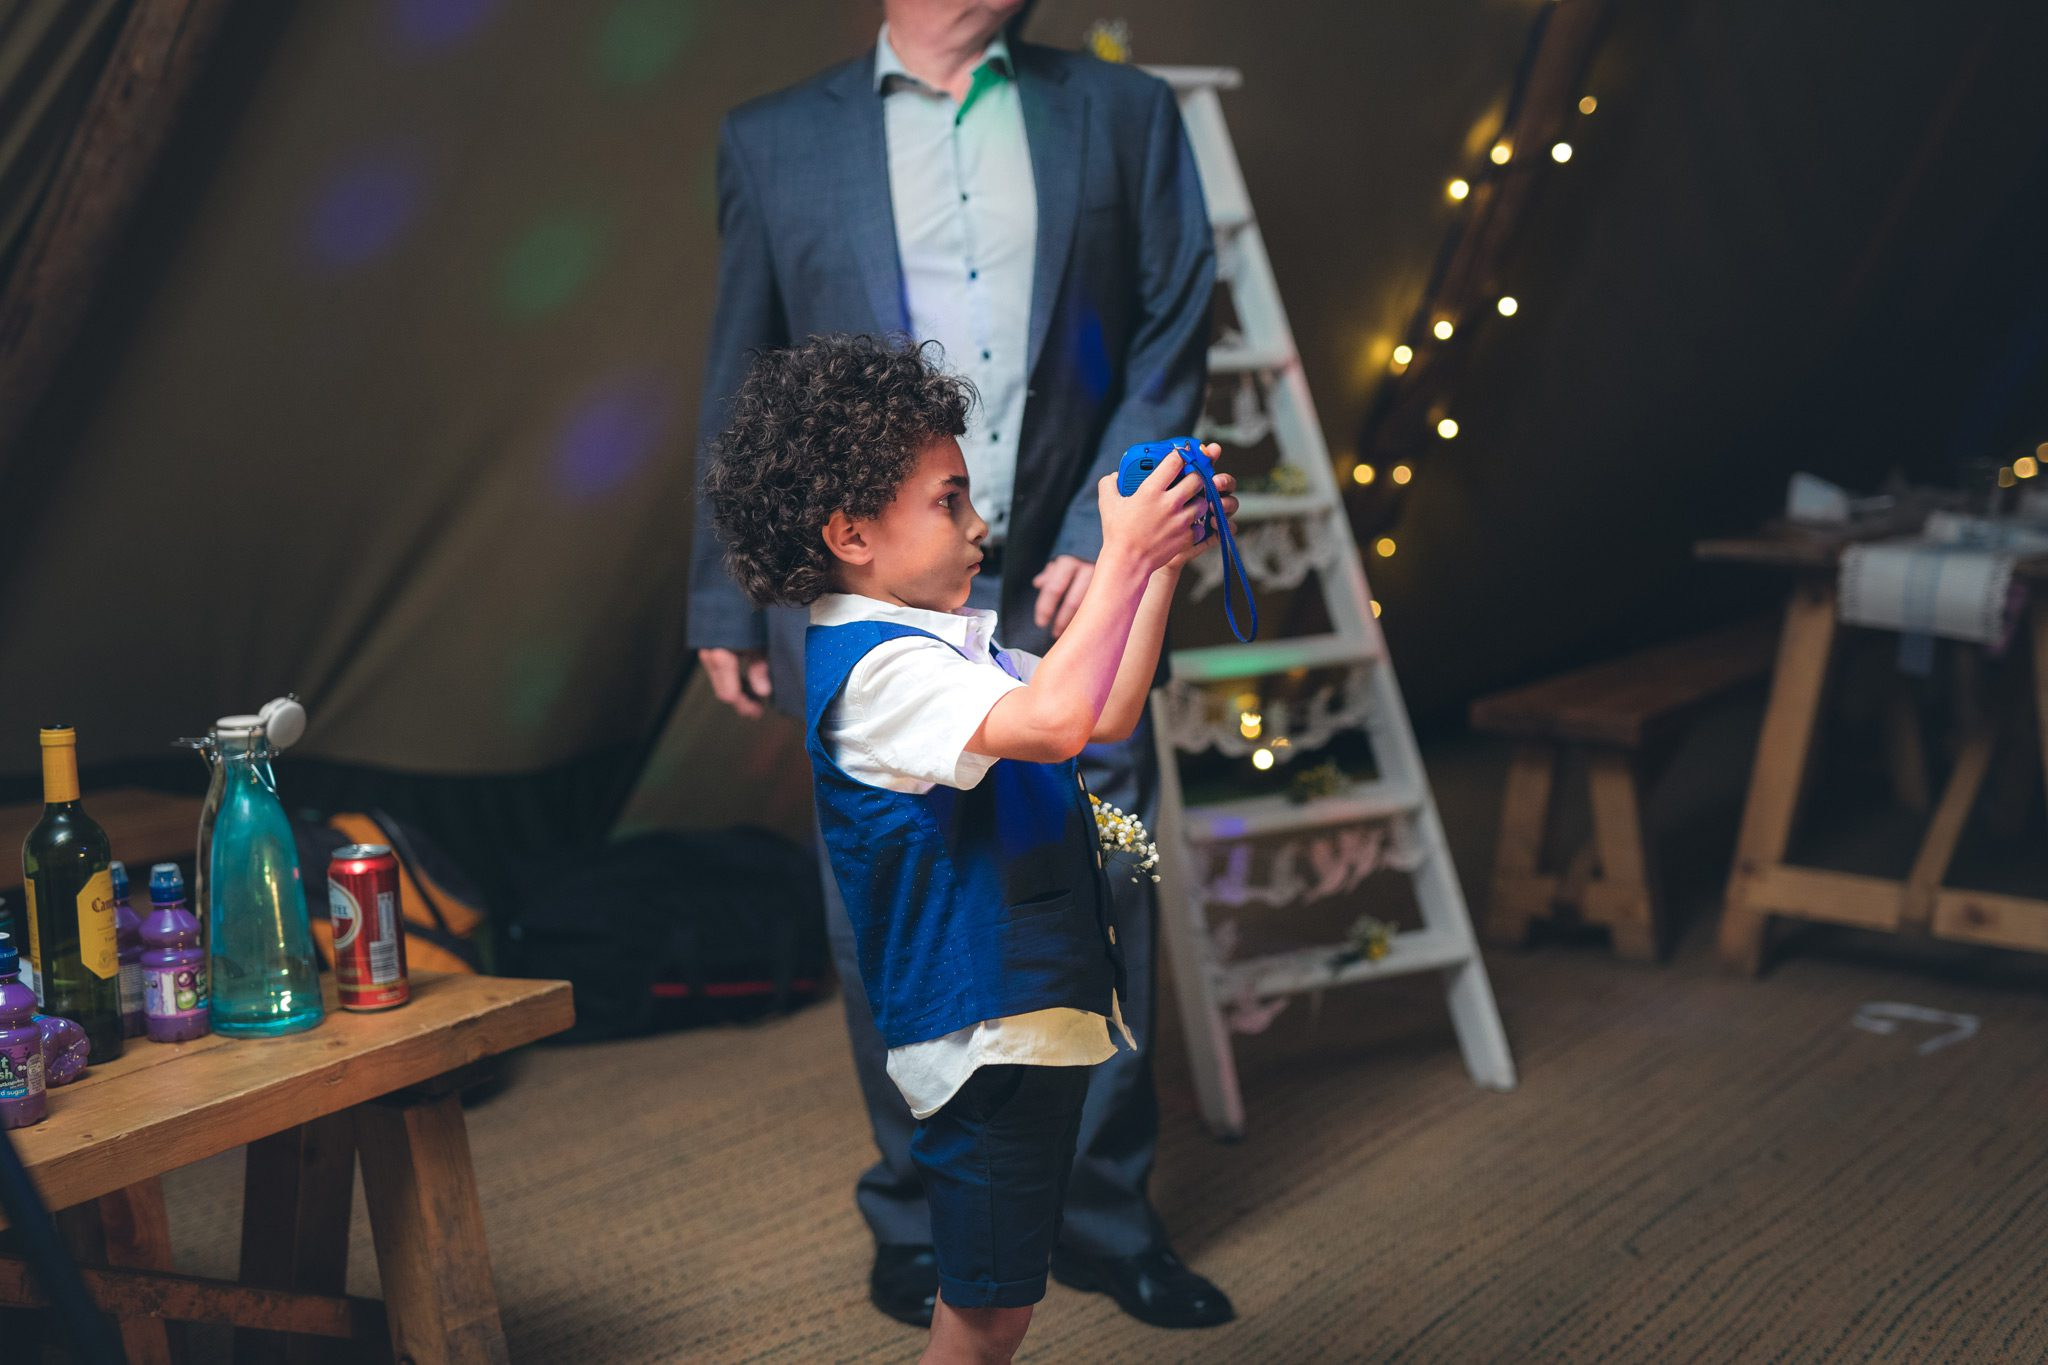 Child taking a photo at a wedding